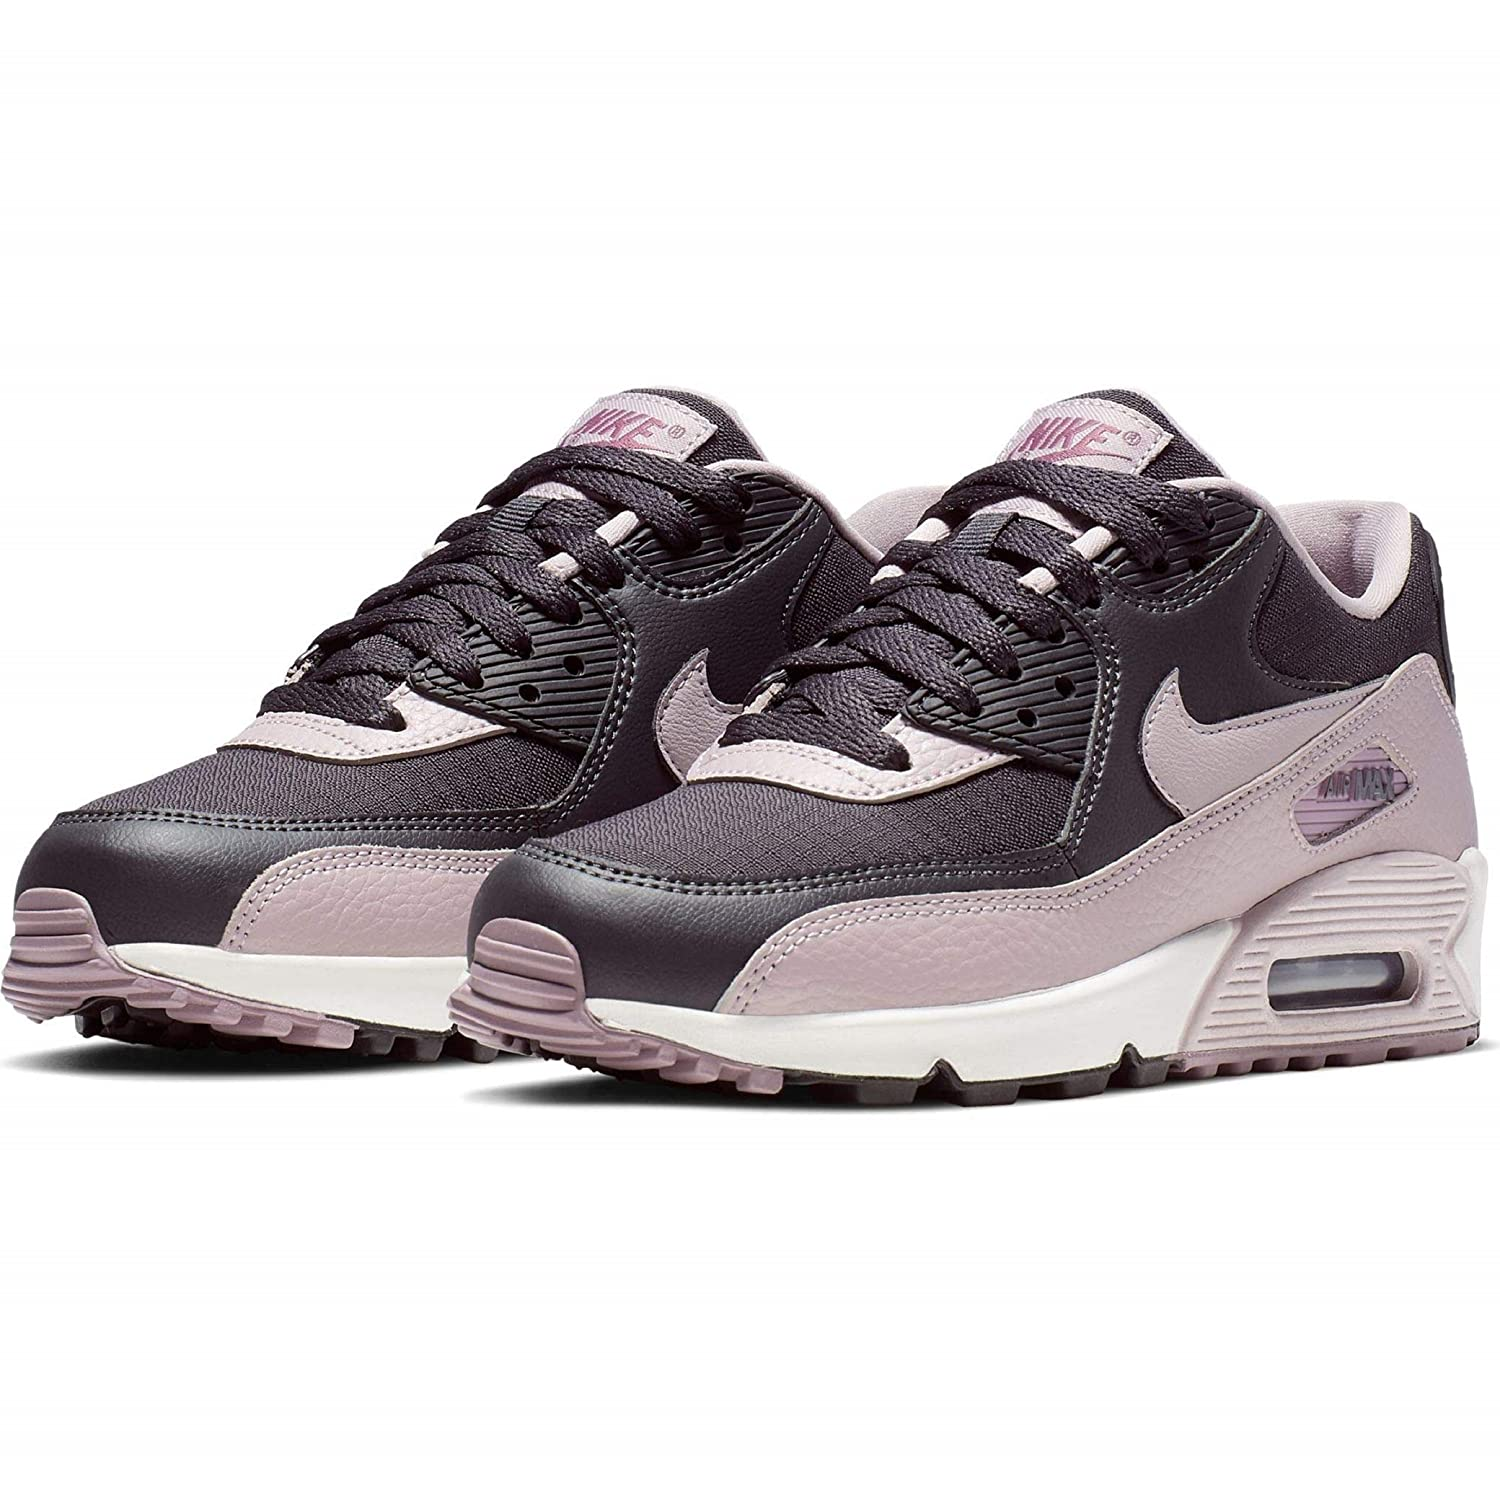 Nike Women's WMNS Air Max 90 Trainers